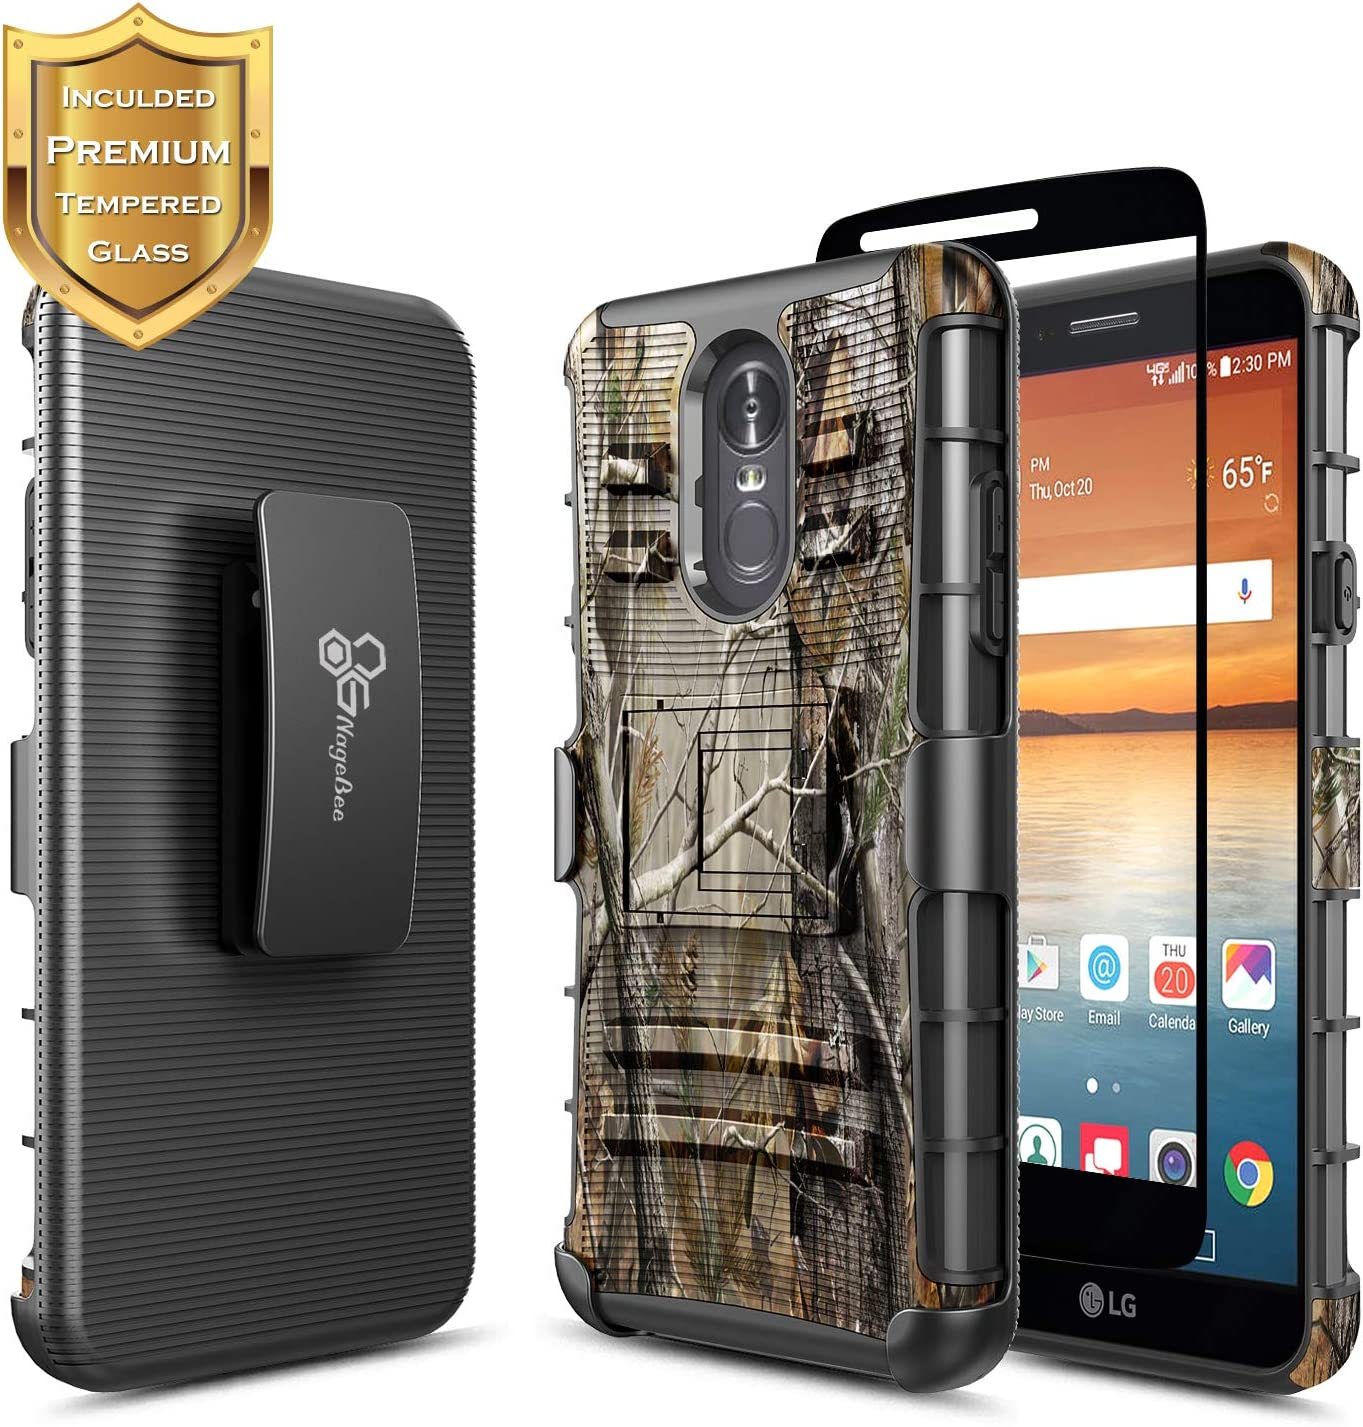 LG Stylo 4 Case, LG Stylo 4+ Plus/LG Q Stylus with Tempered Glass Screen Protector (Full Coverage), NageBee Belt Clip Holster Heavy Duty Armor Shockproof Kickstand Rugged Durable Combo Case -Camo